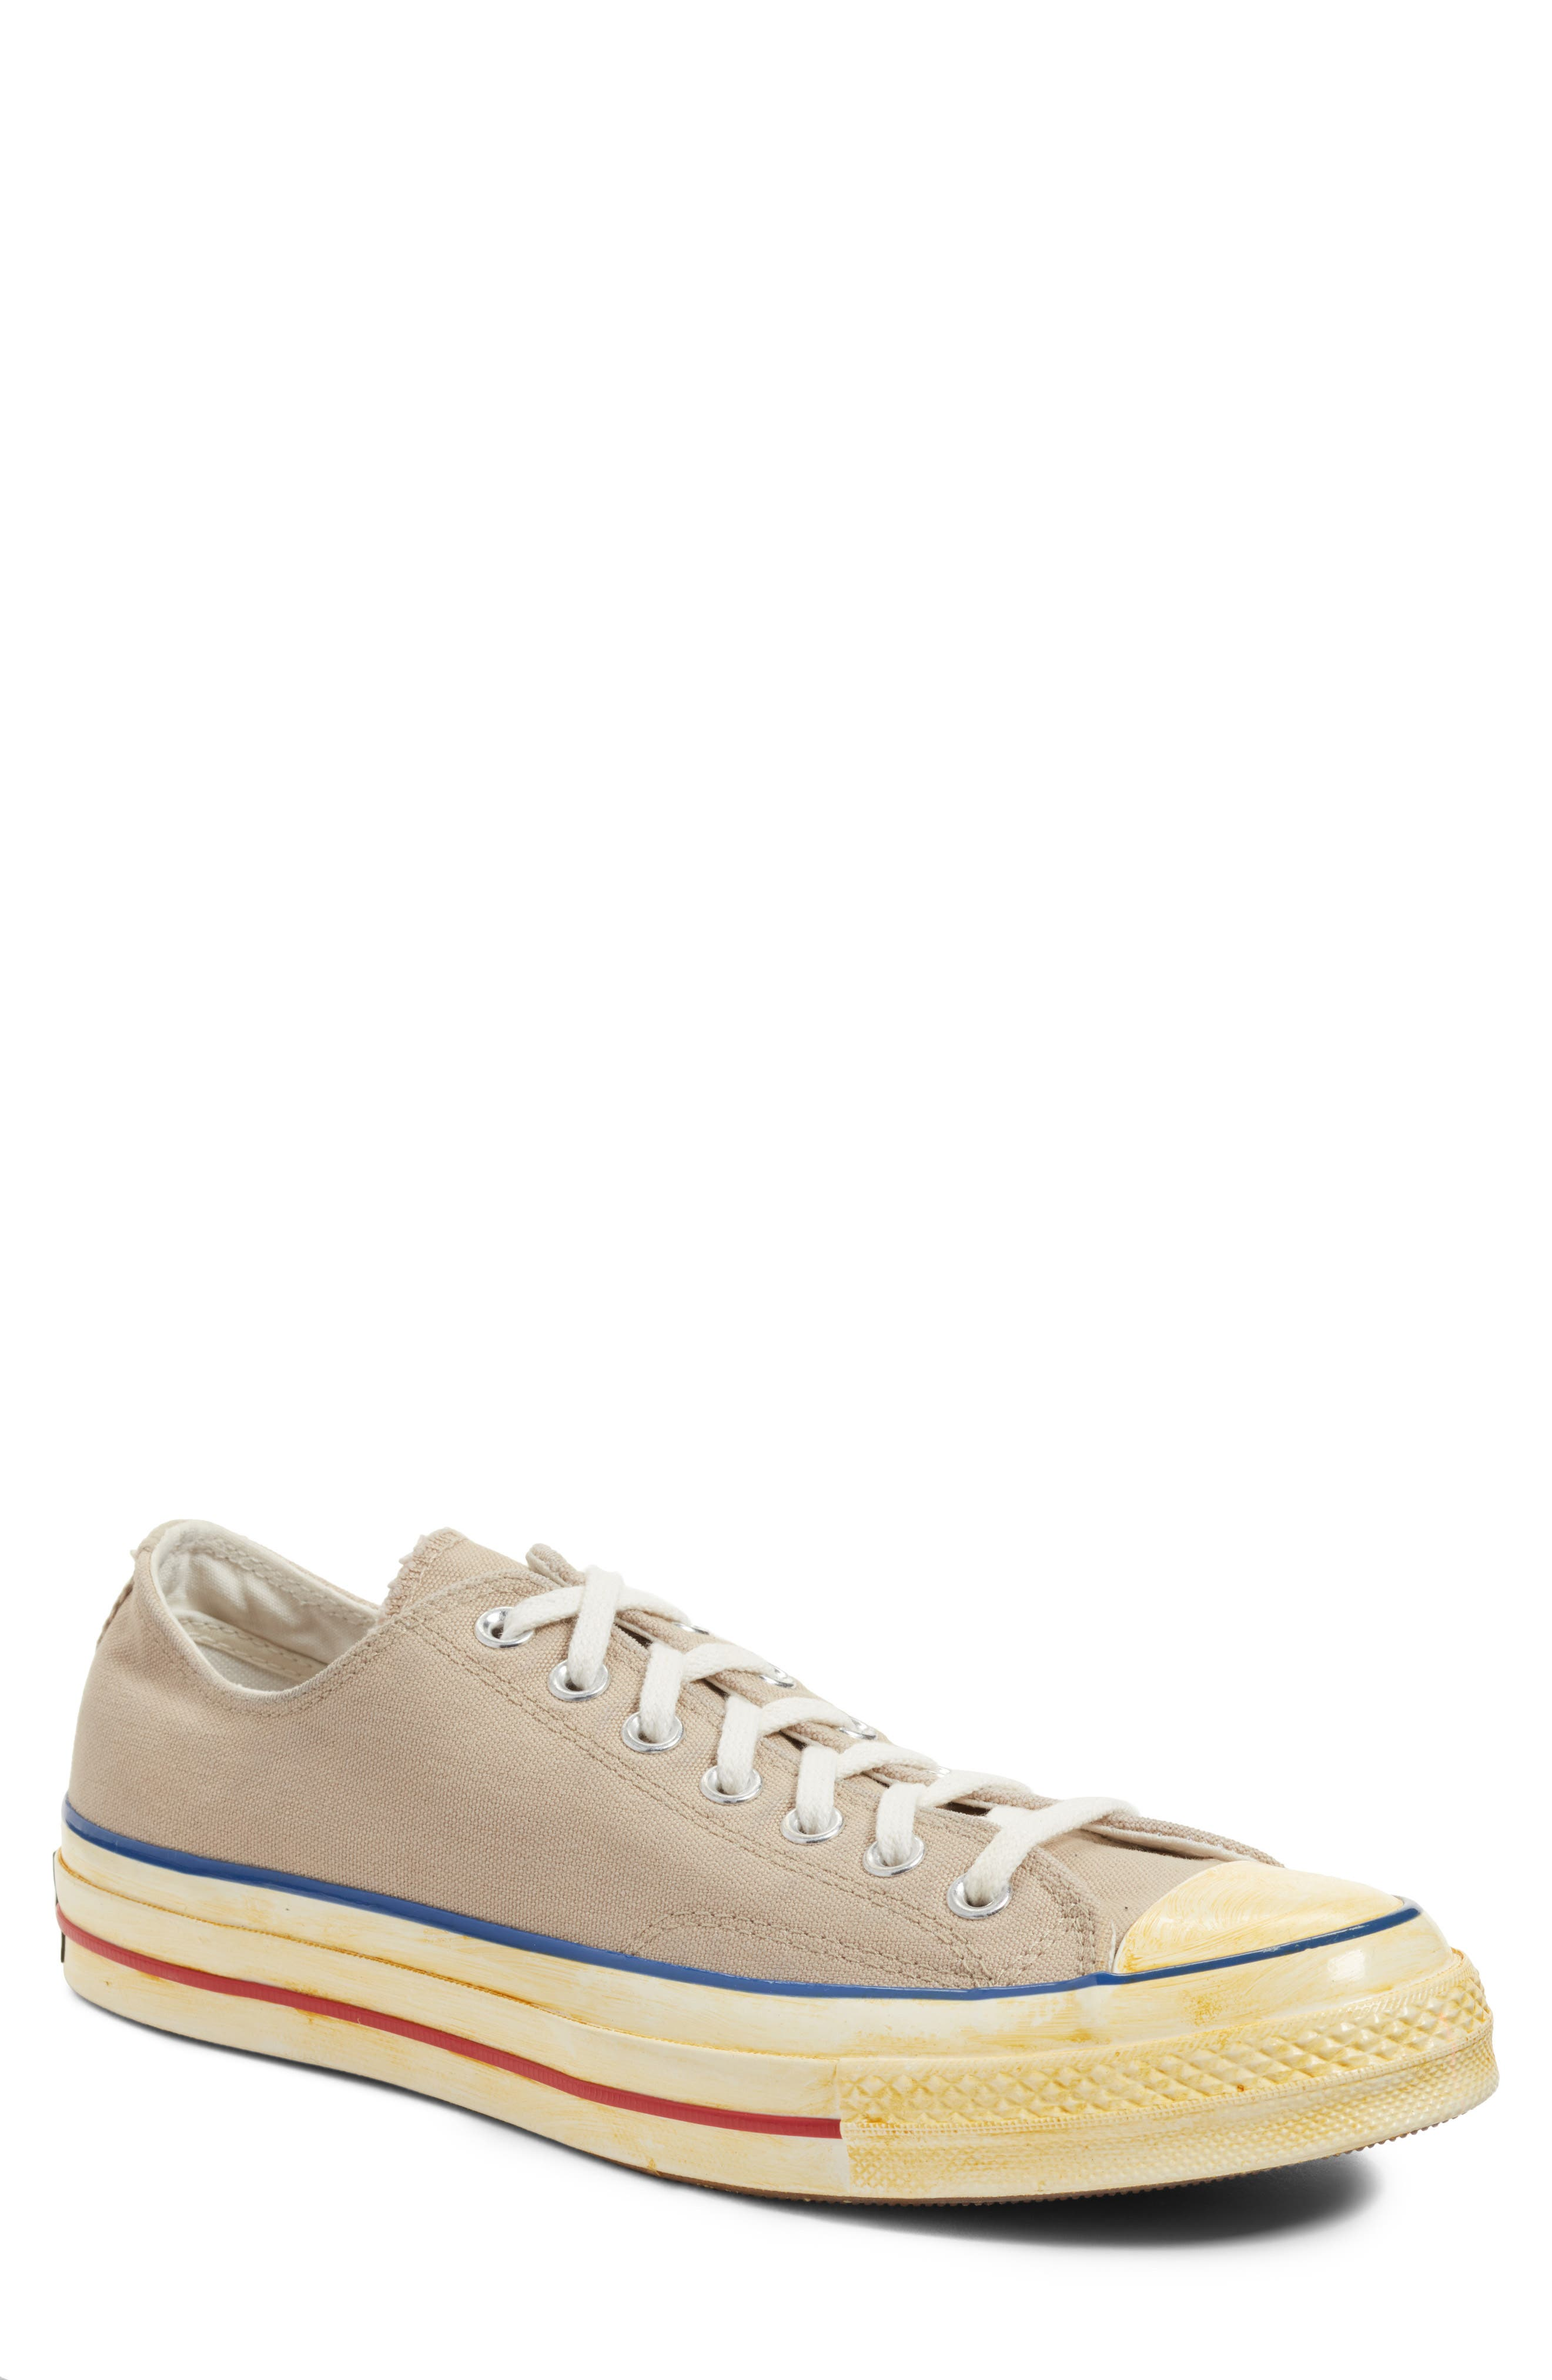 Chuck Taylor<sup>®</sup> All Star<sup>®</sup> 70 Low Top Sneaker,                         Main,                         color, 270